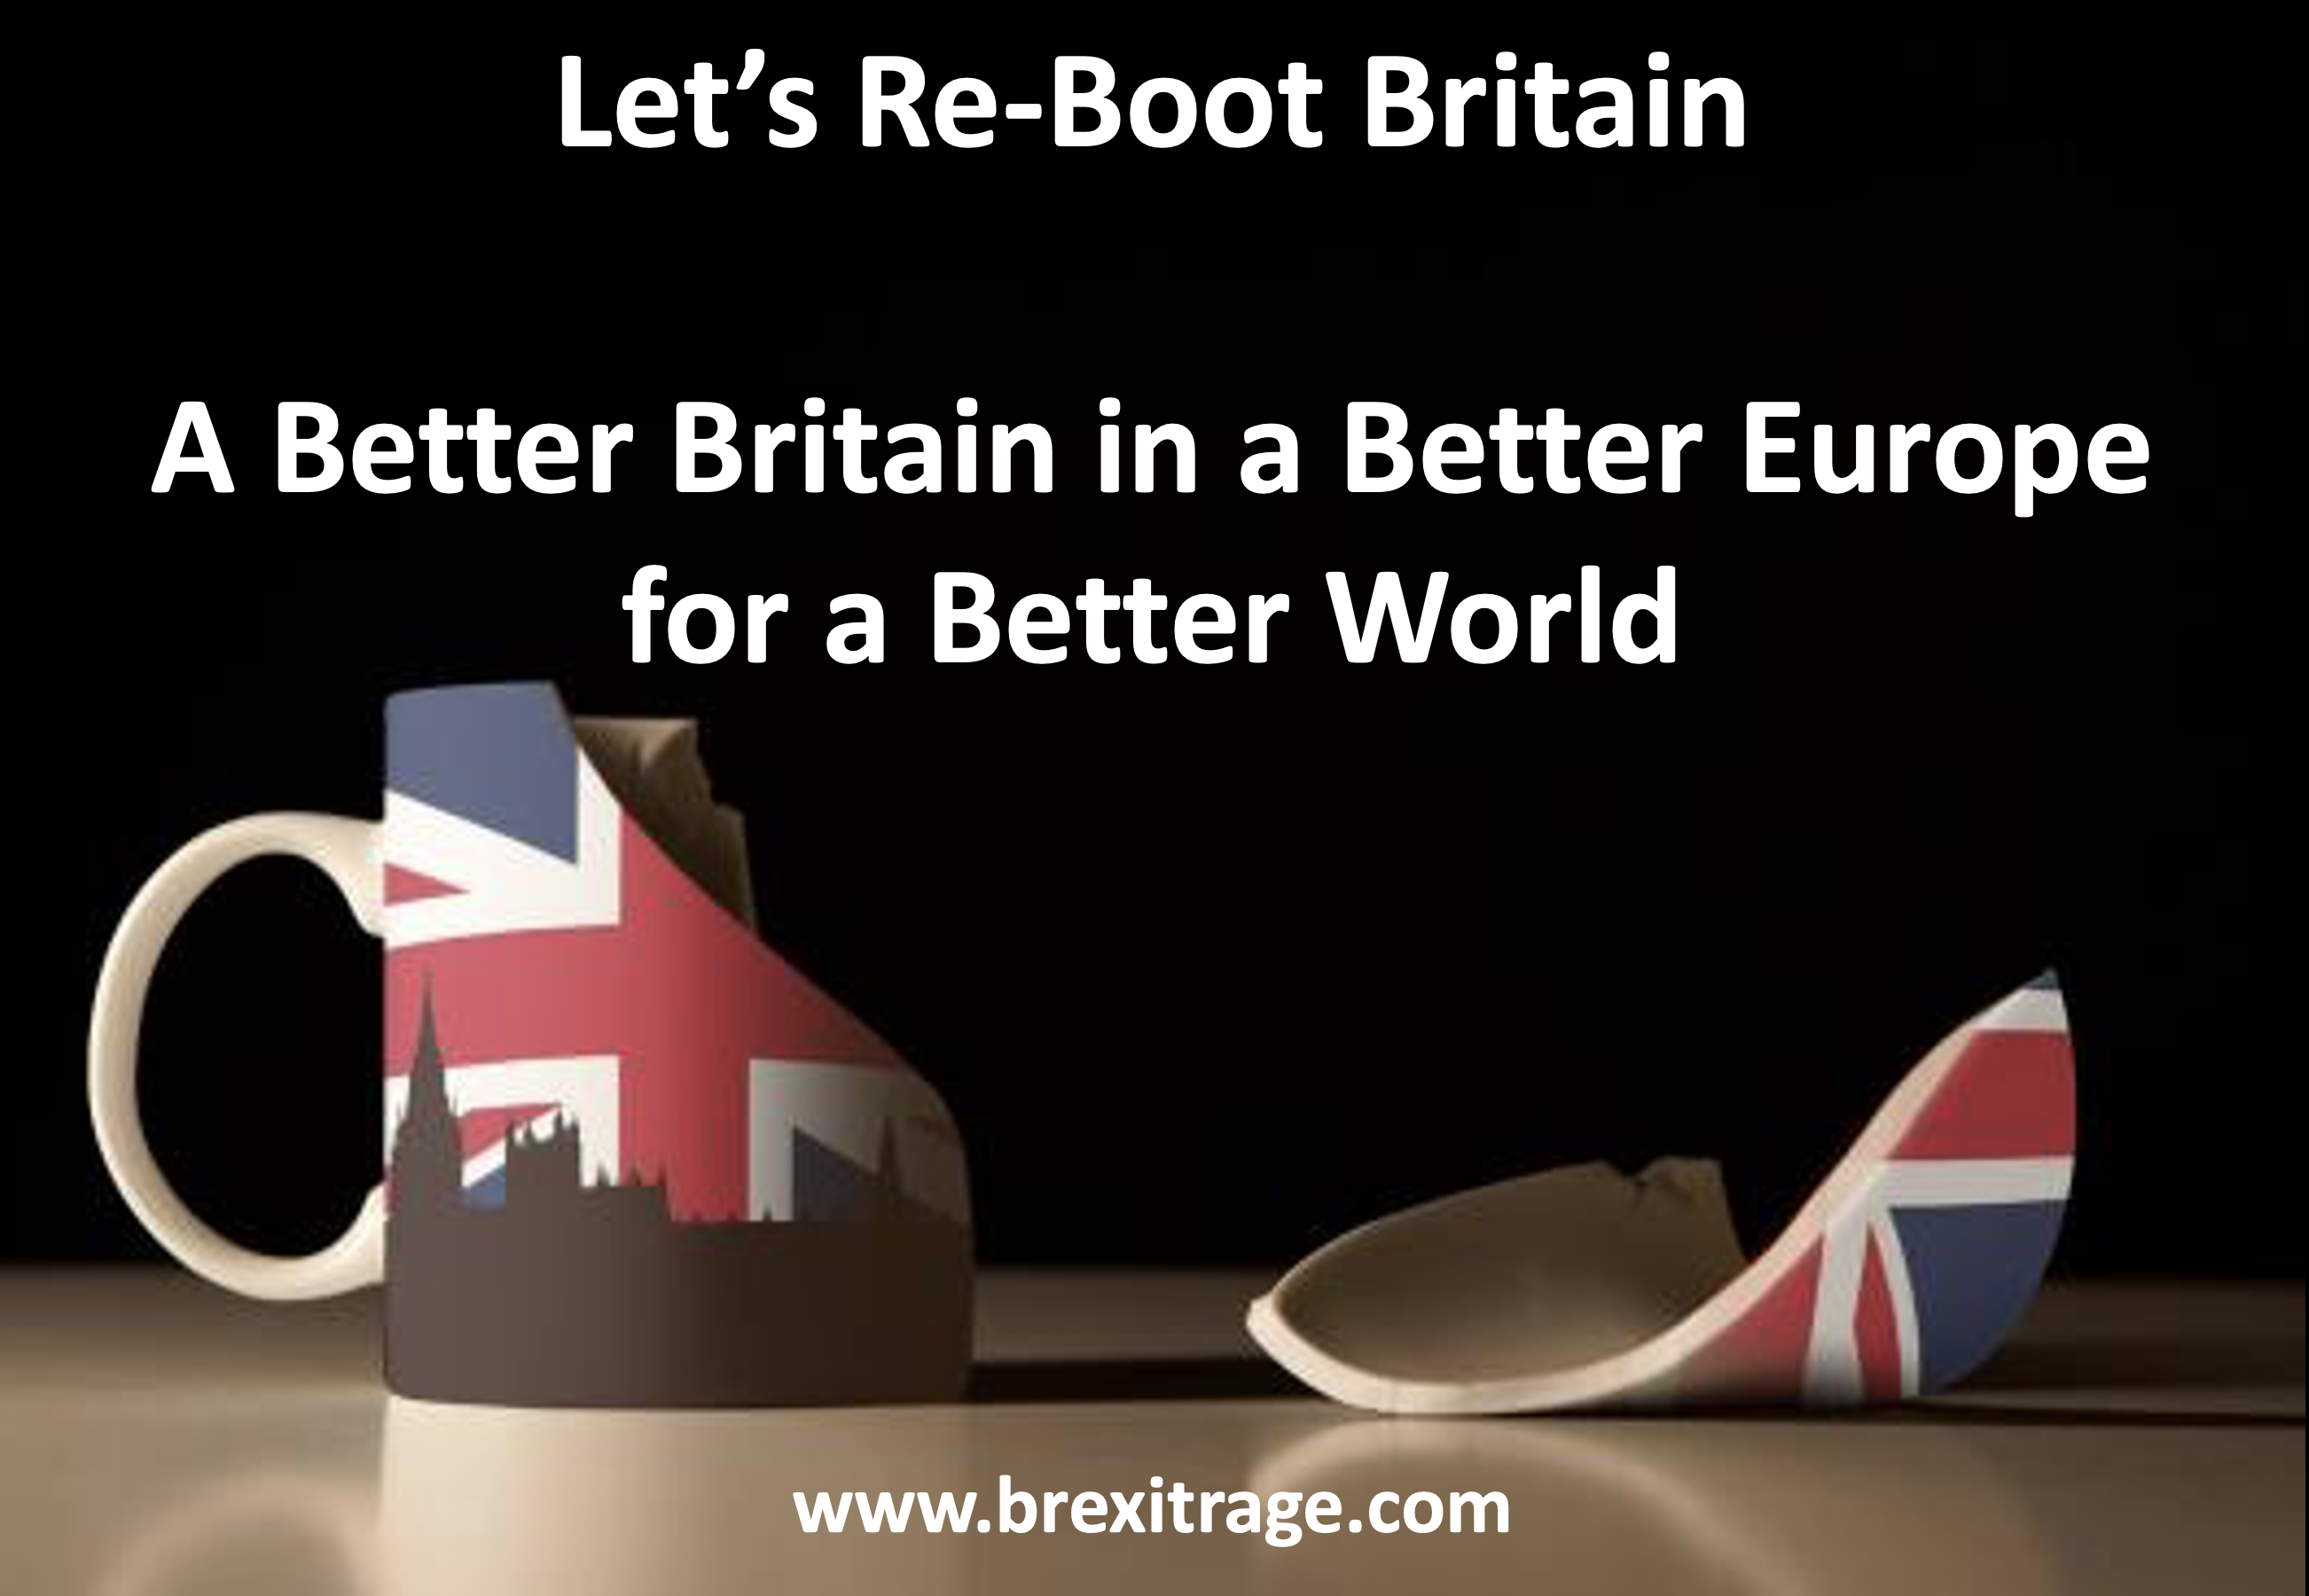 Re-Boot Britain